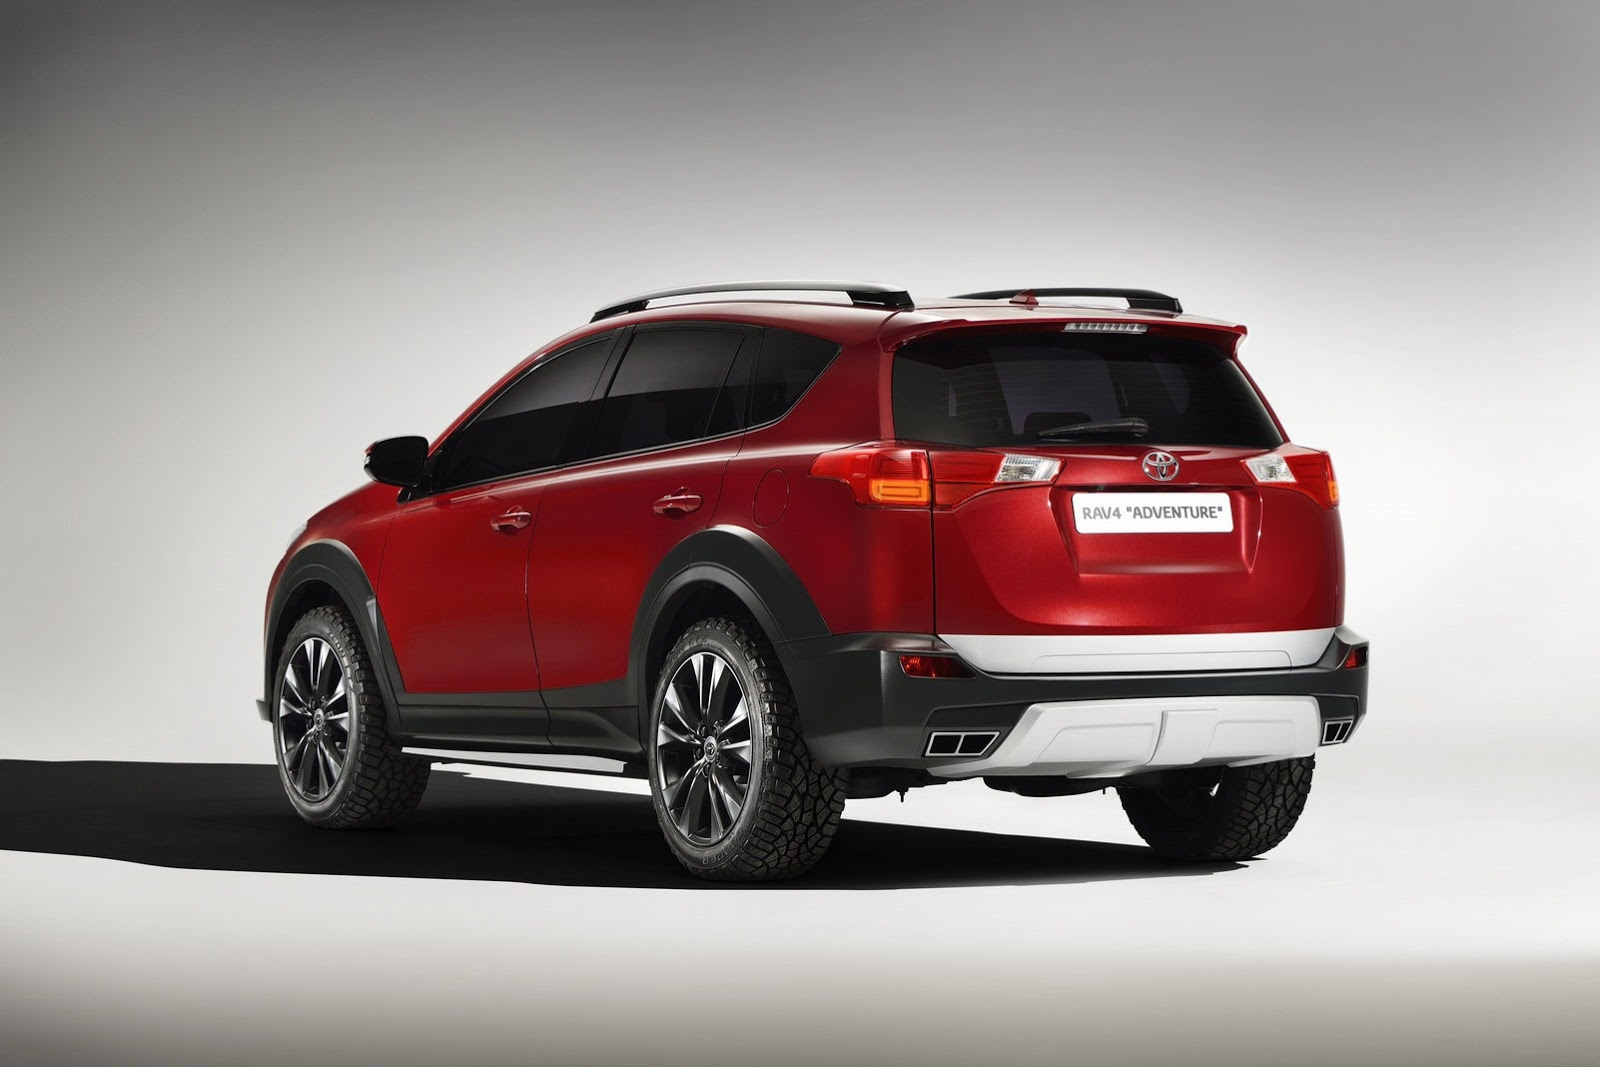 toyota gets tough luxurious with new rav4 concepts autoevolution. Black Bedroom Furniture Sets. Home Design Ideas